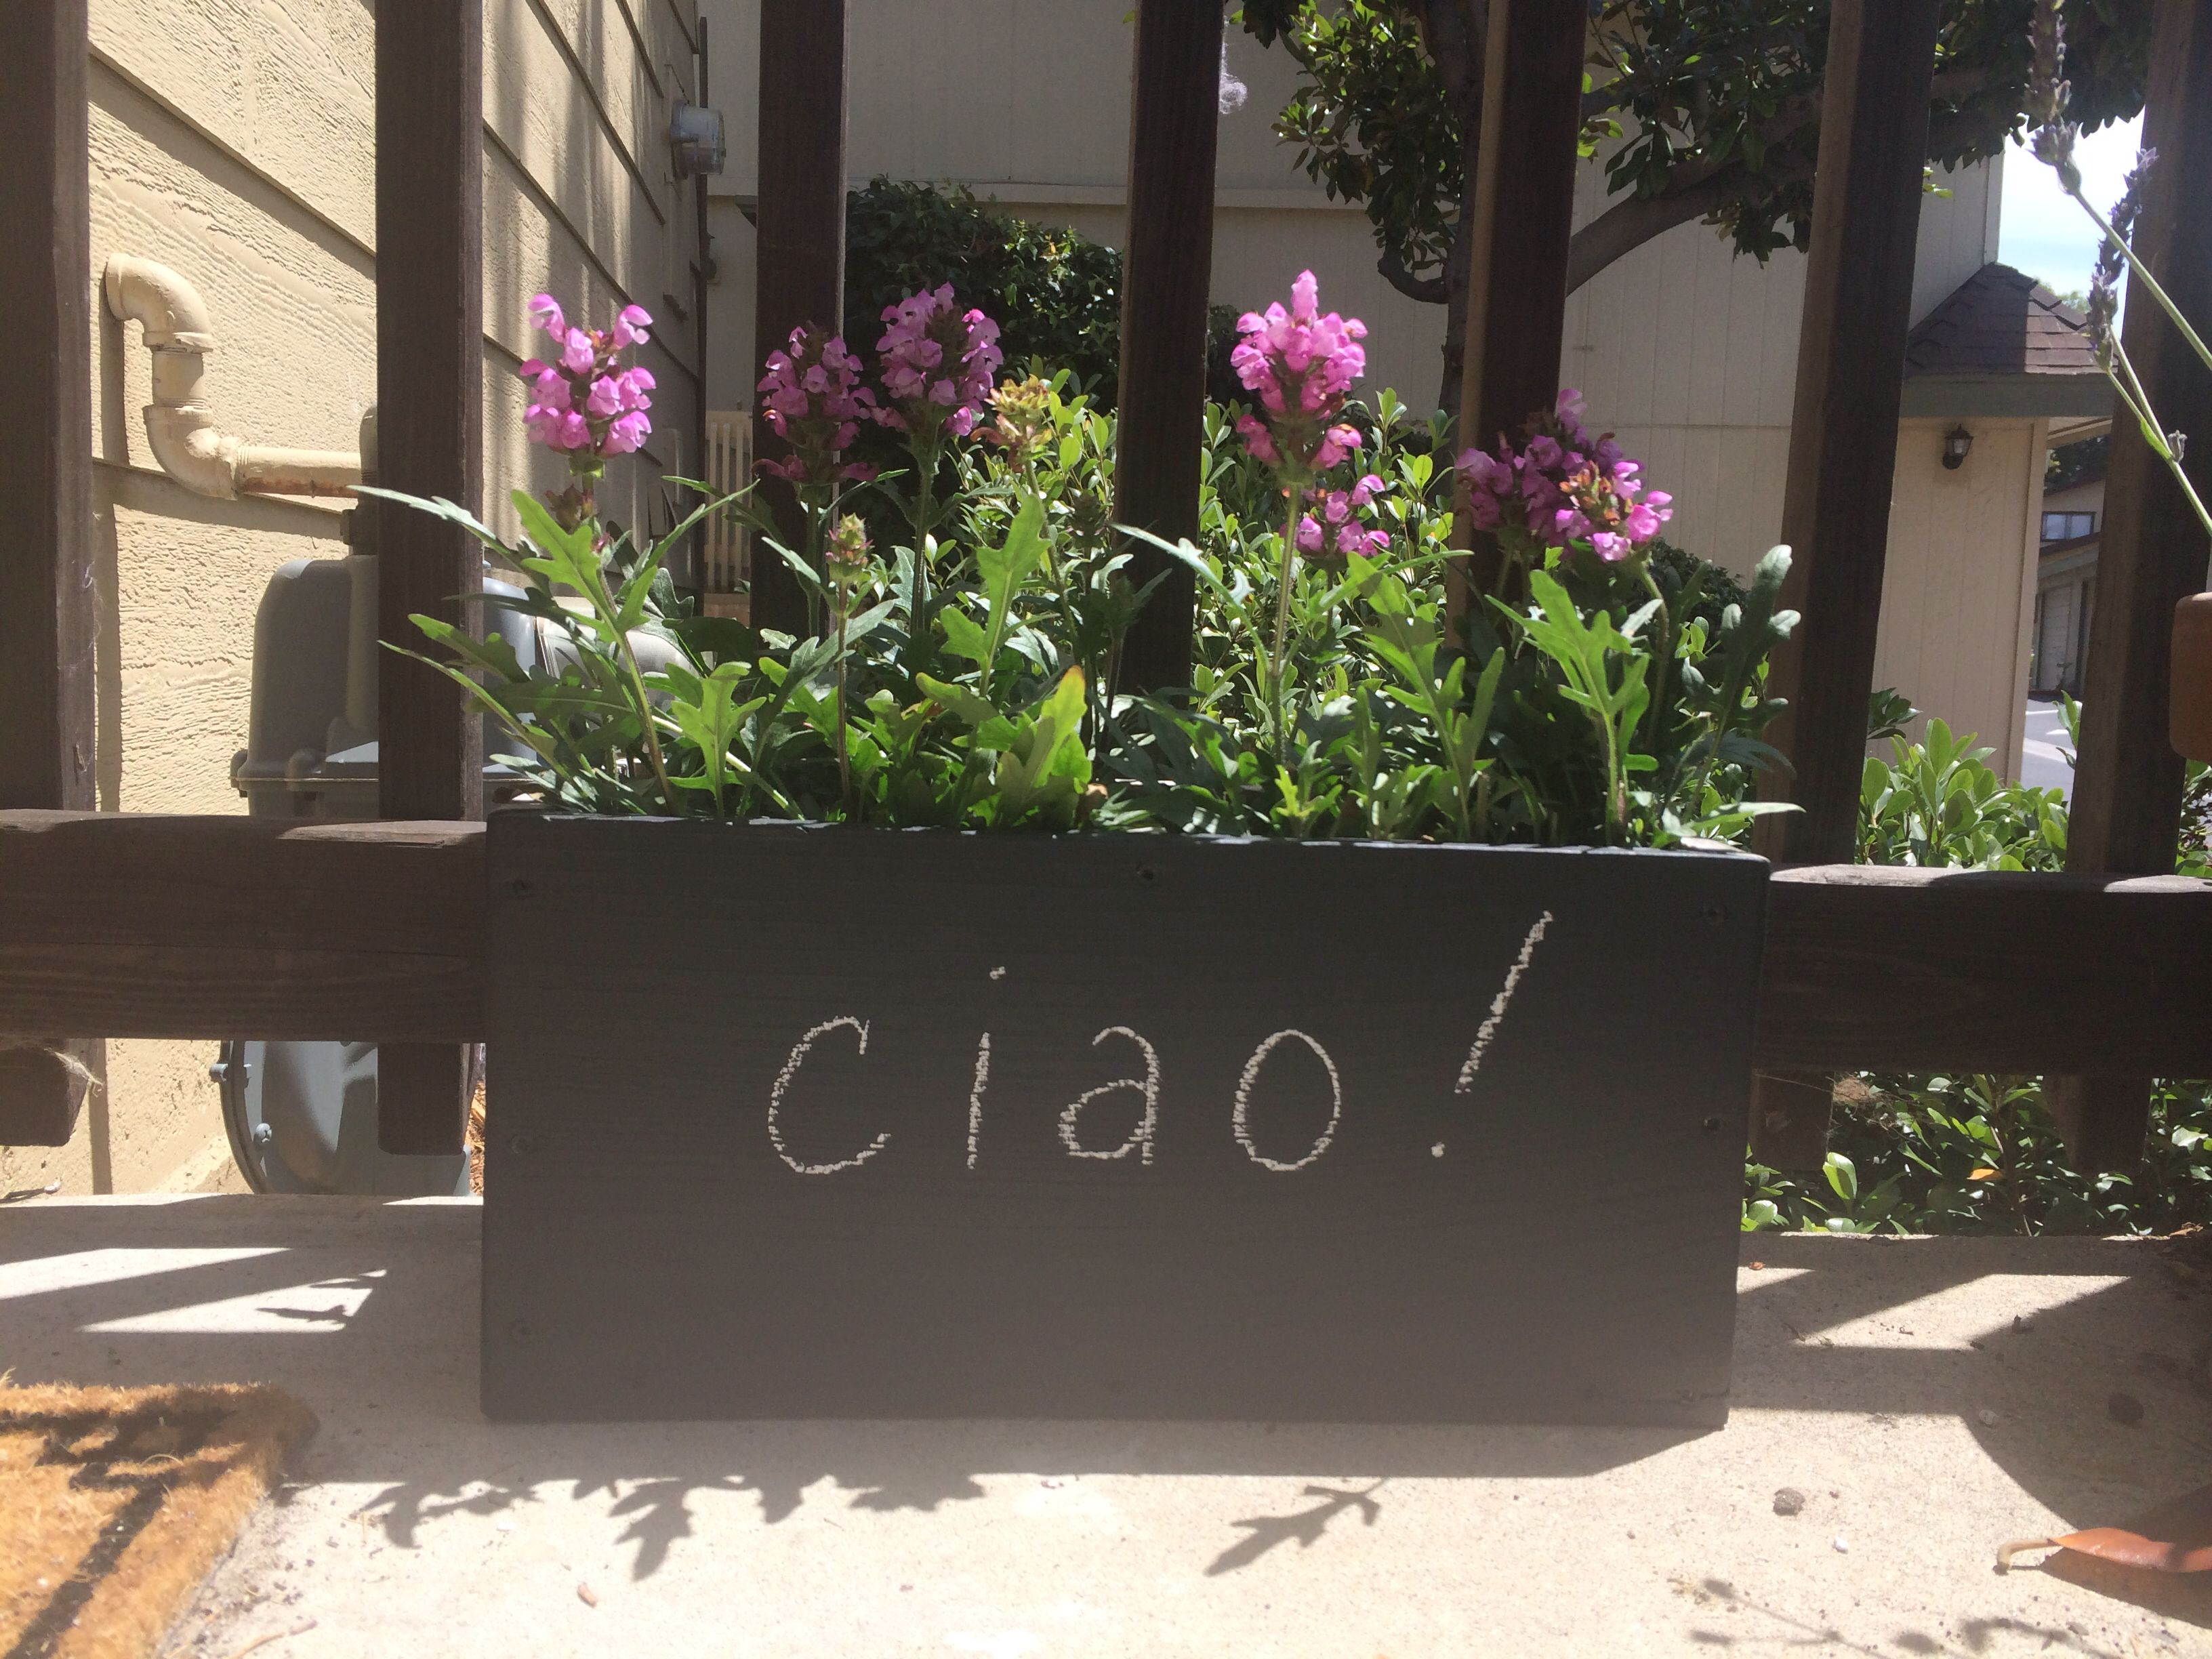 My Awesome Diy Chalkboard Painted Wooden Planter With All Heal Flowers From A Local